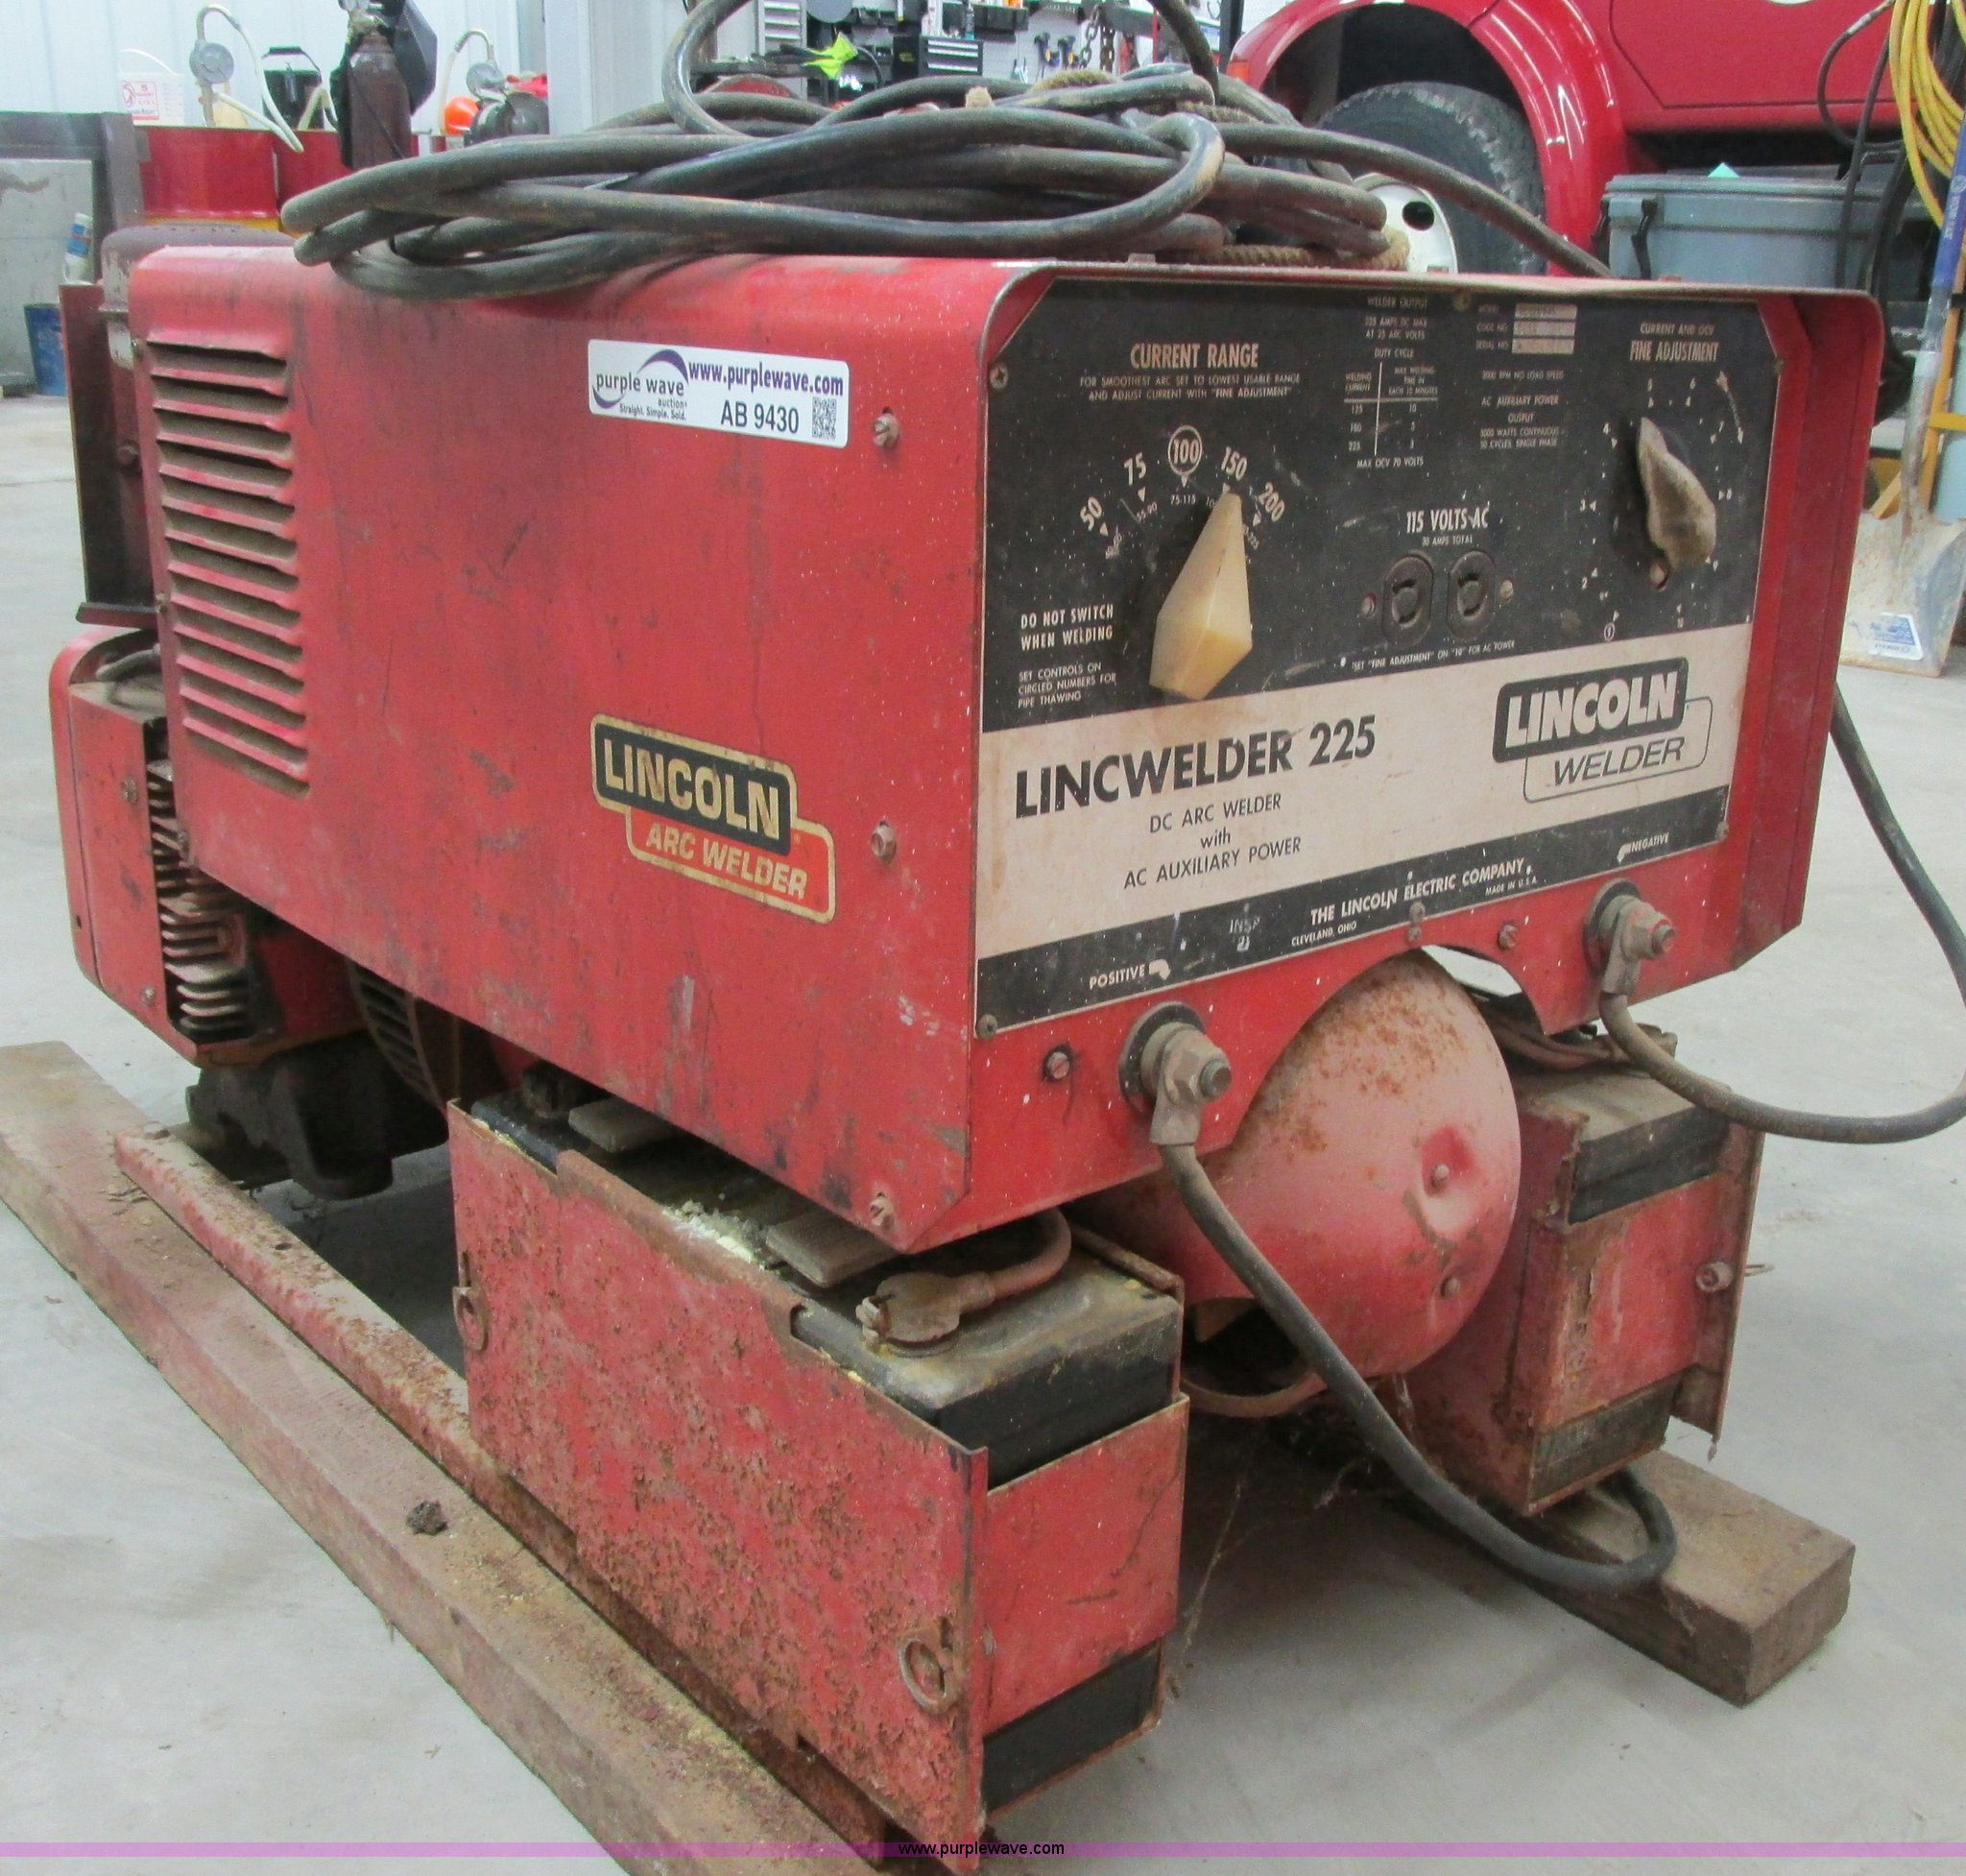 Lincwelder 225 Wiring Diagram Free Download Welding Generator Lincoln Welder Item Ab9430 Sold